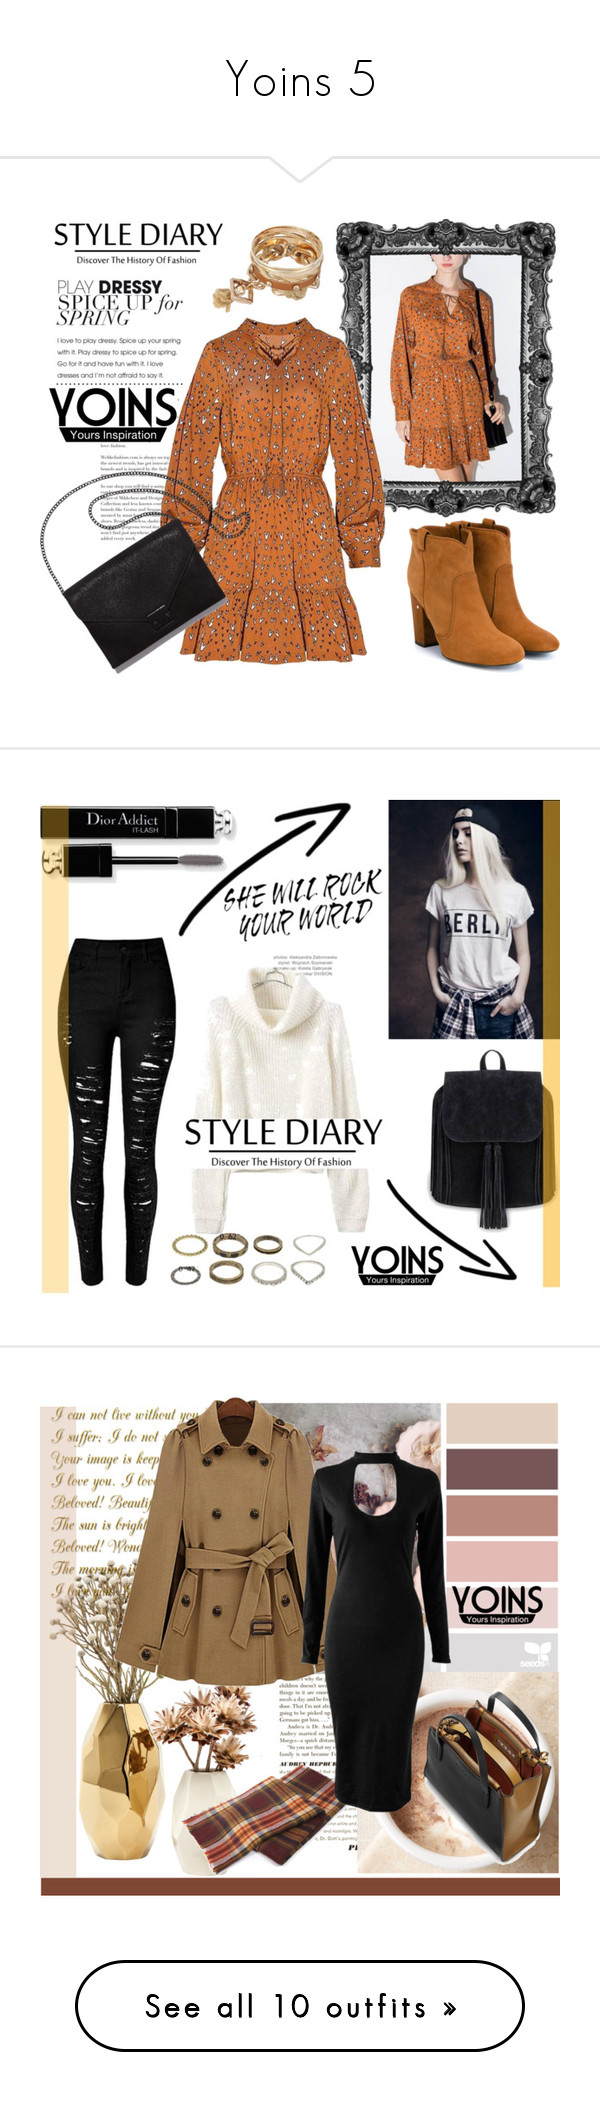 """""""Yoins 5"""" by lejlamoranjkic ❤ liked on Polyvore featuring Laurence Dacade, Loeffler Randall, yoins, Christian Dior, Nate Berkus, Marni, Chanel, Accessorize, Hermès and Forever 21"""